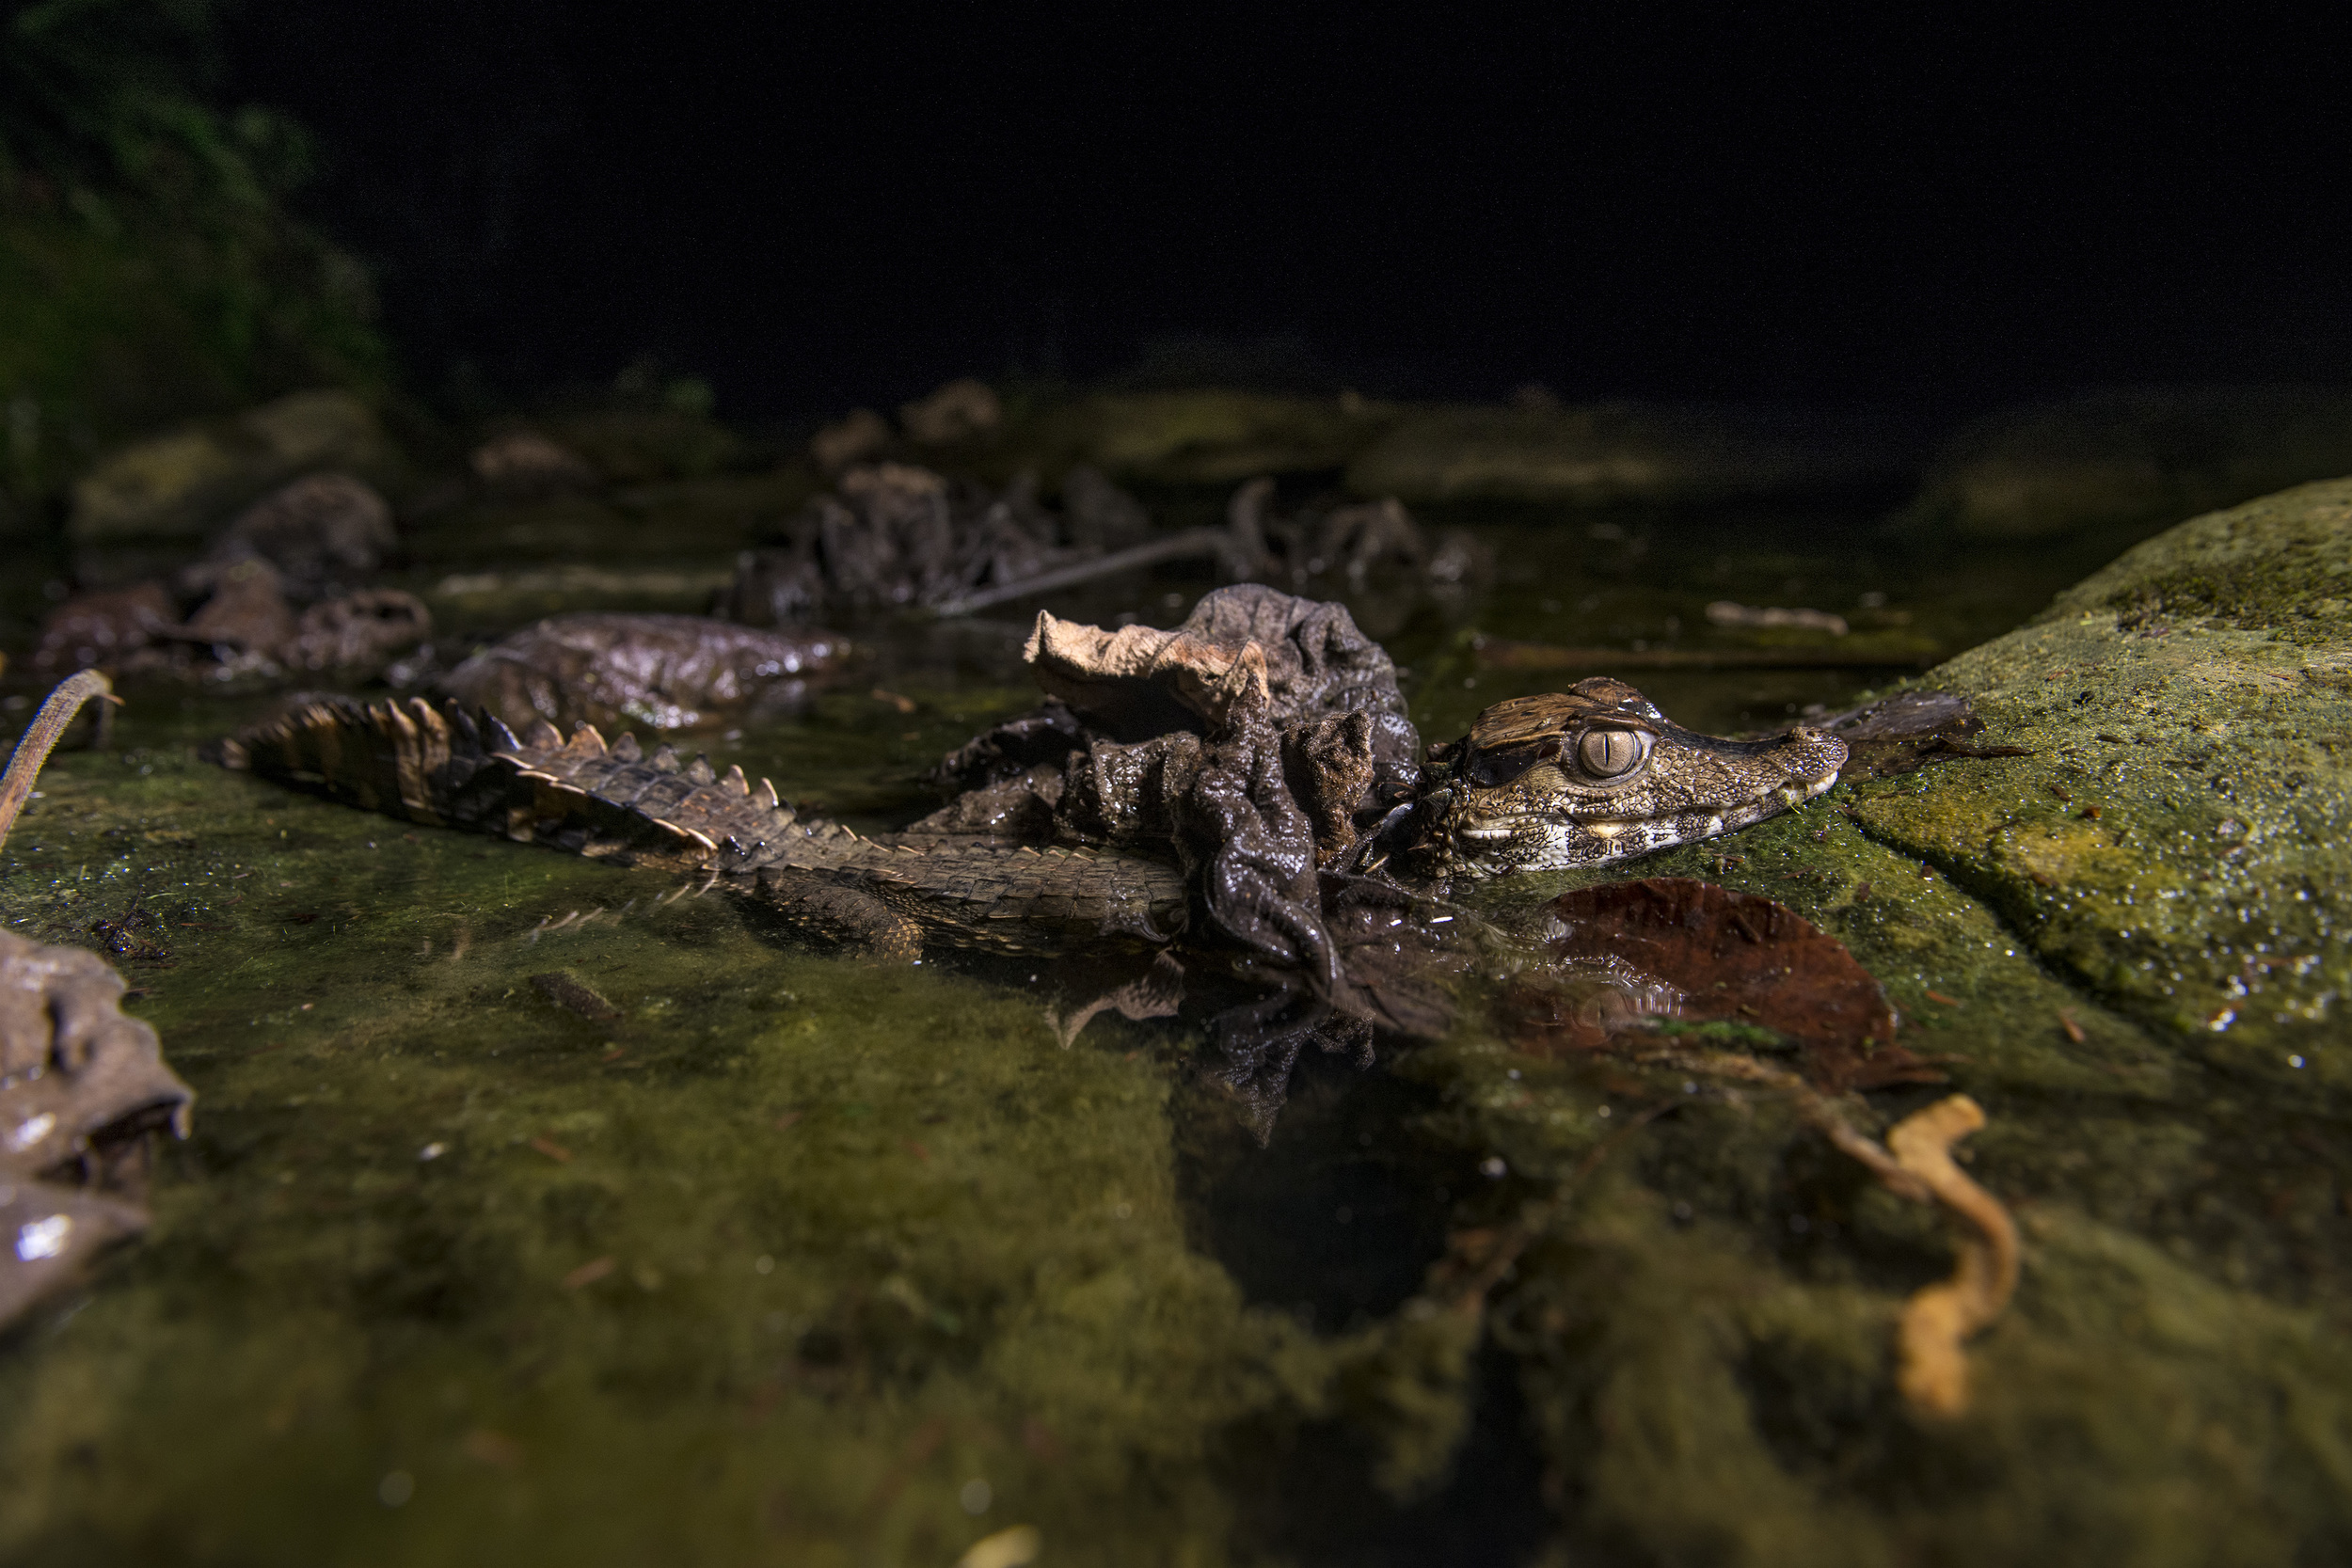 Mystery of the Caiman